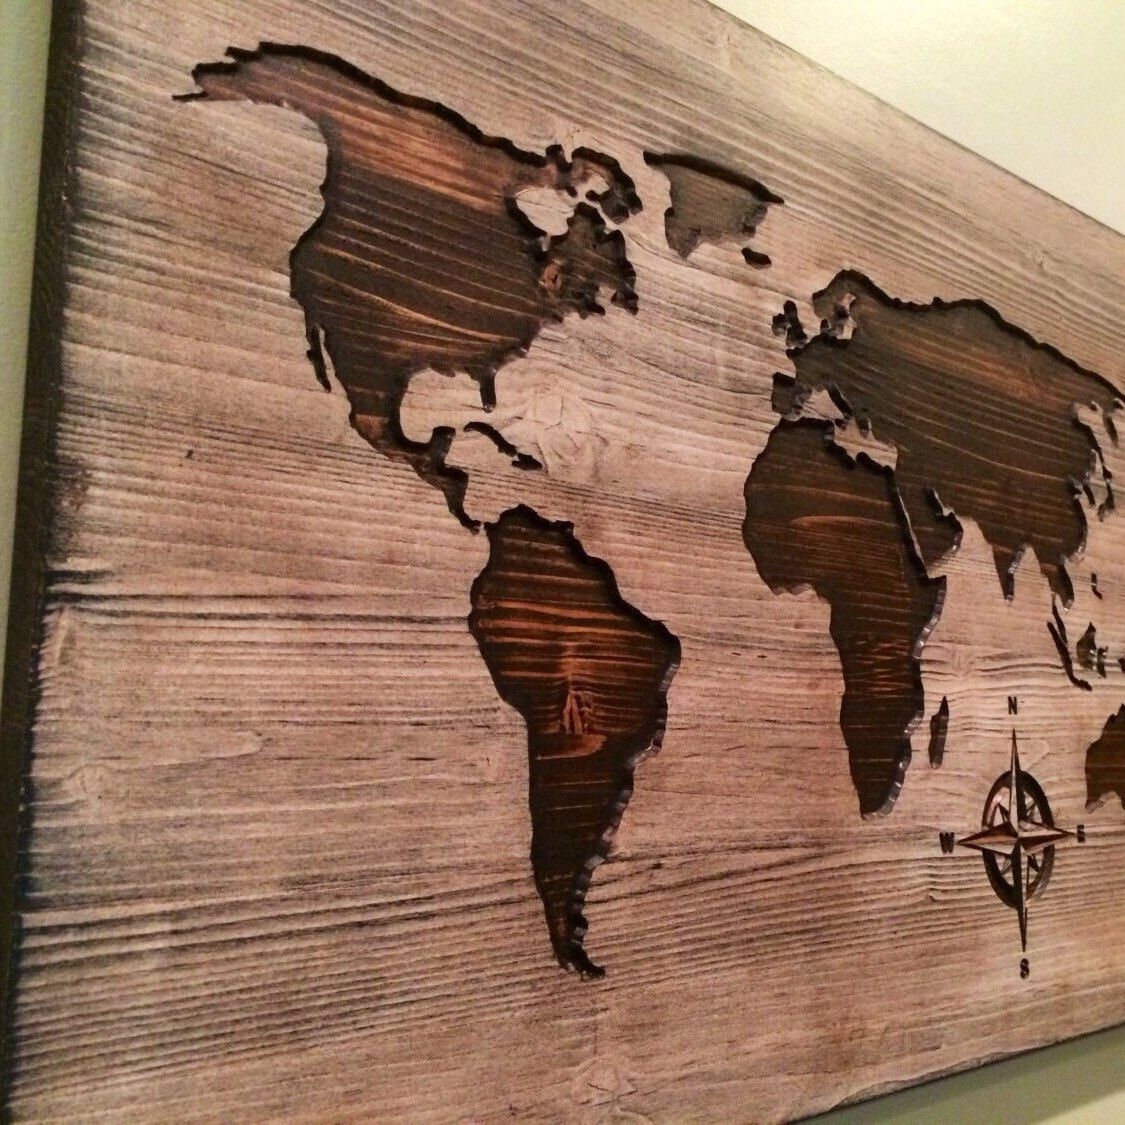 Carved wooden world map wood wall art world map home decor world carved wooden world map wood wall art world map home decor world map decal world map poster distressed chic shabby housewarming gumiabroncs Image collections